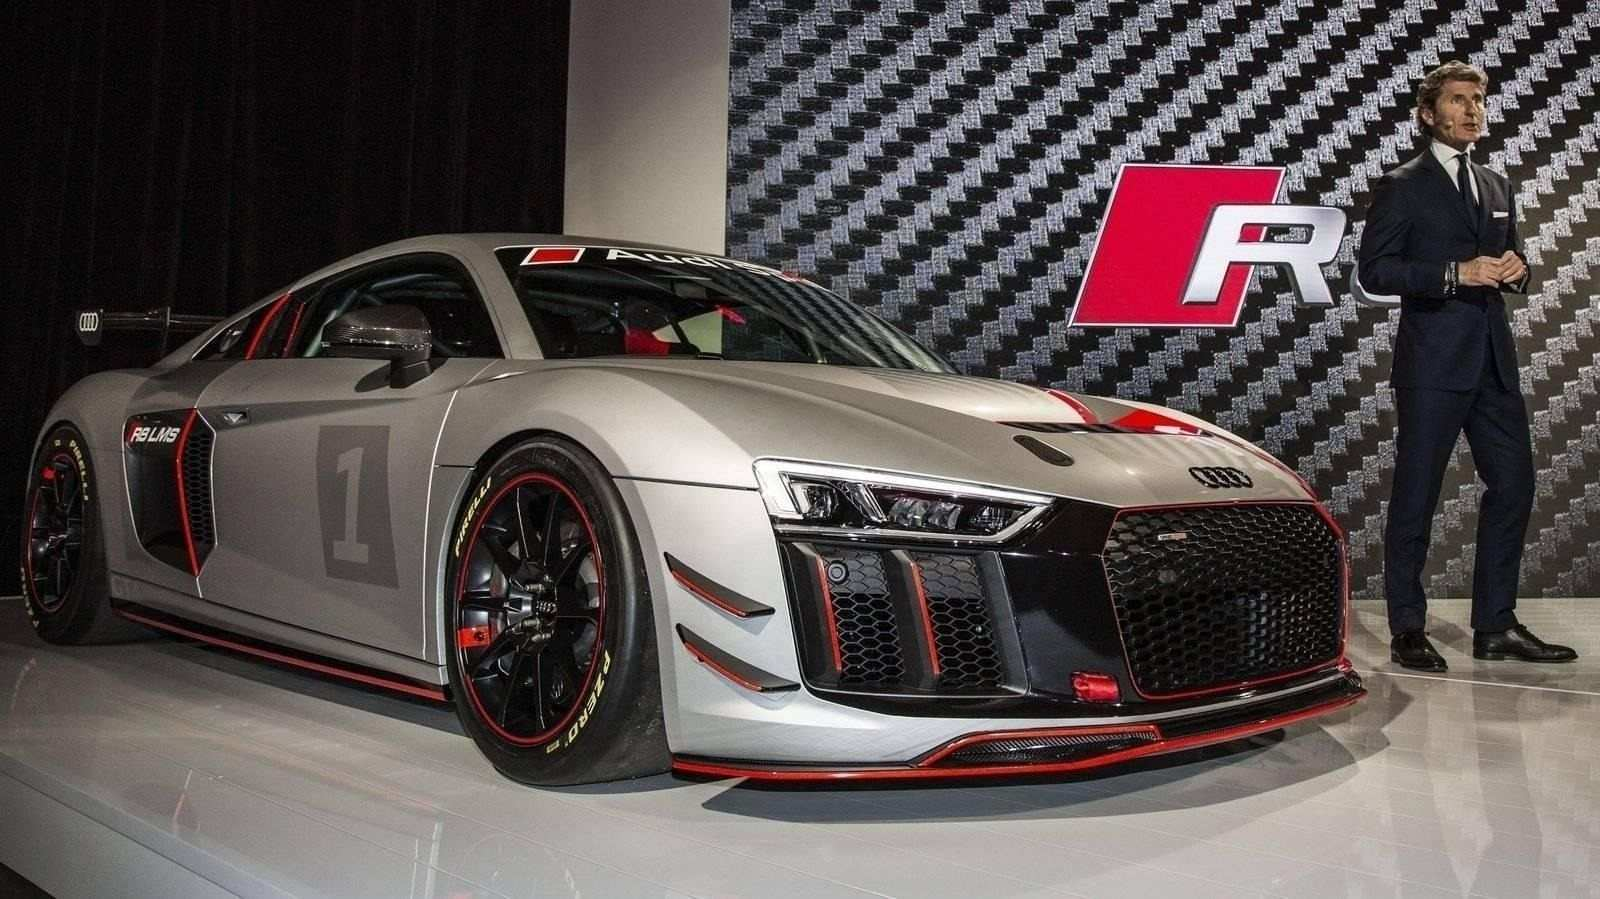 43 The Best 2020 Audi R8 LMXs Release Date